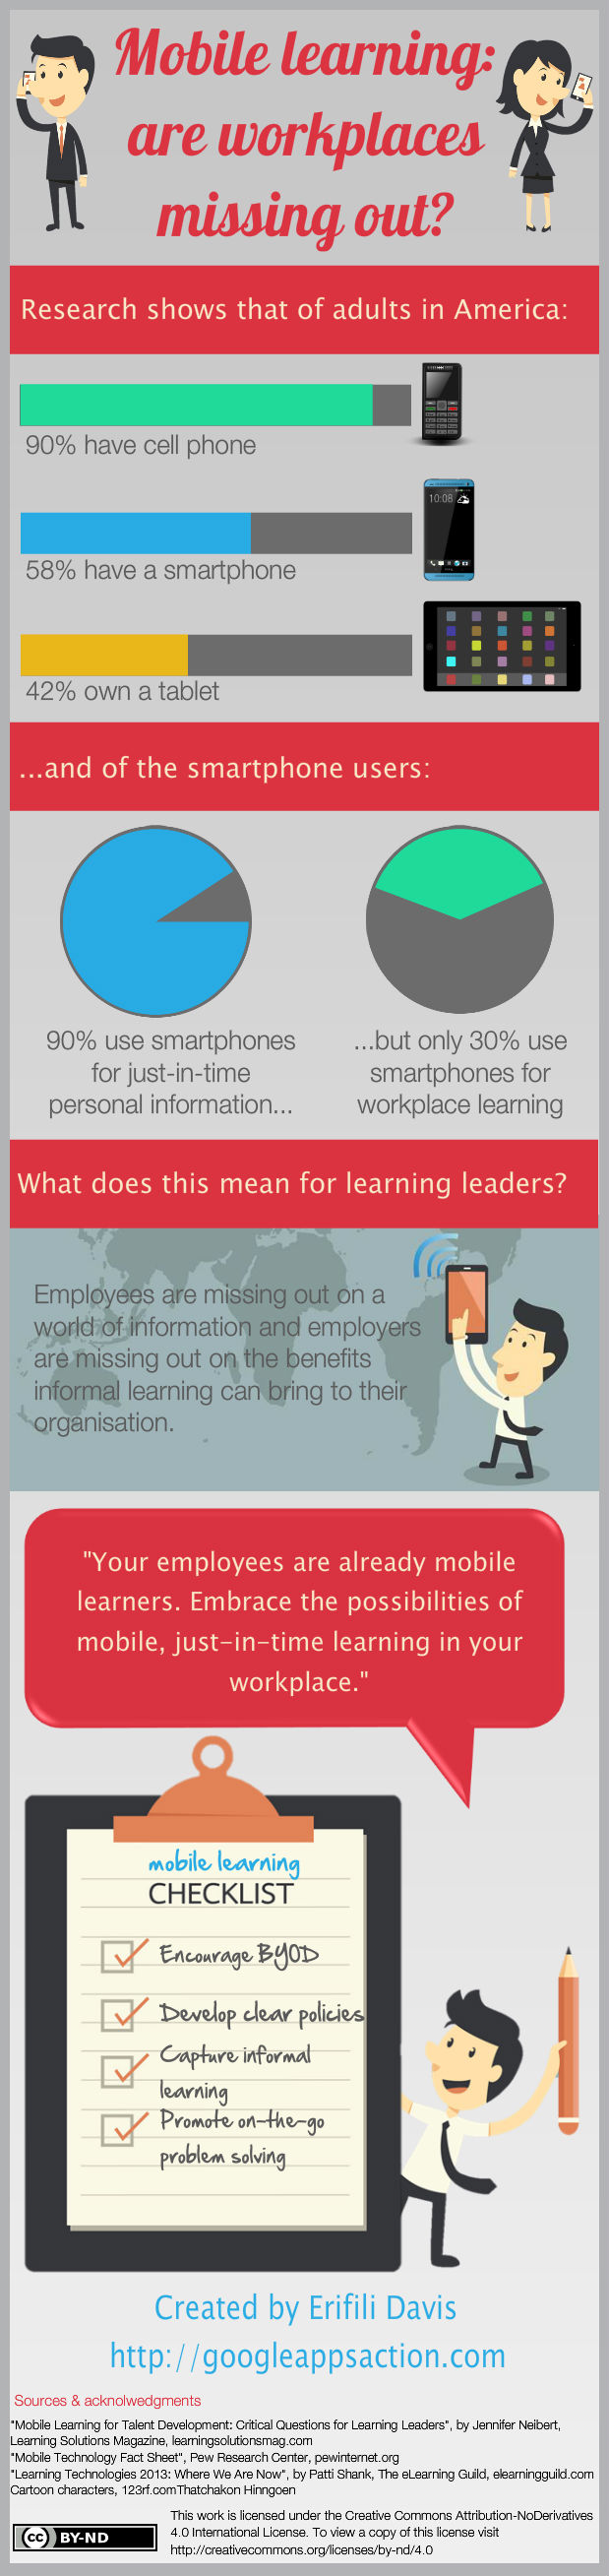 Infographic on mlearning in the workplace.